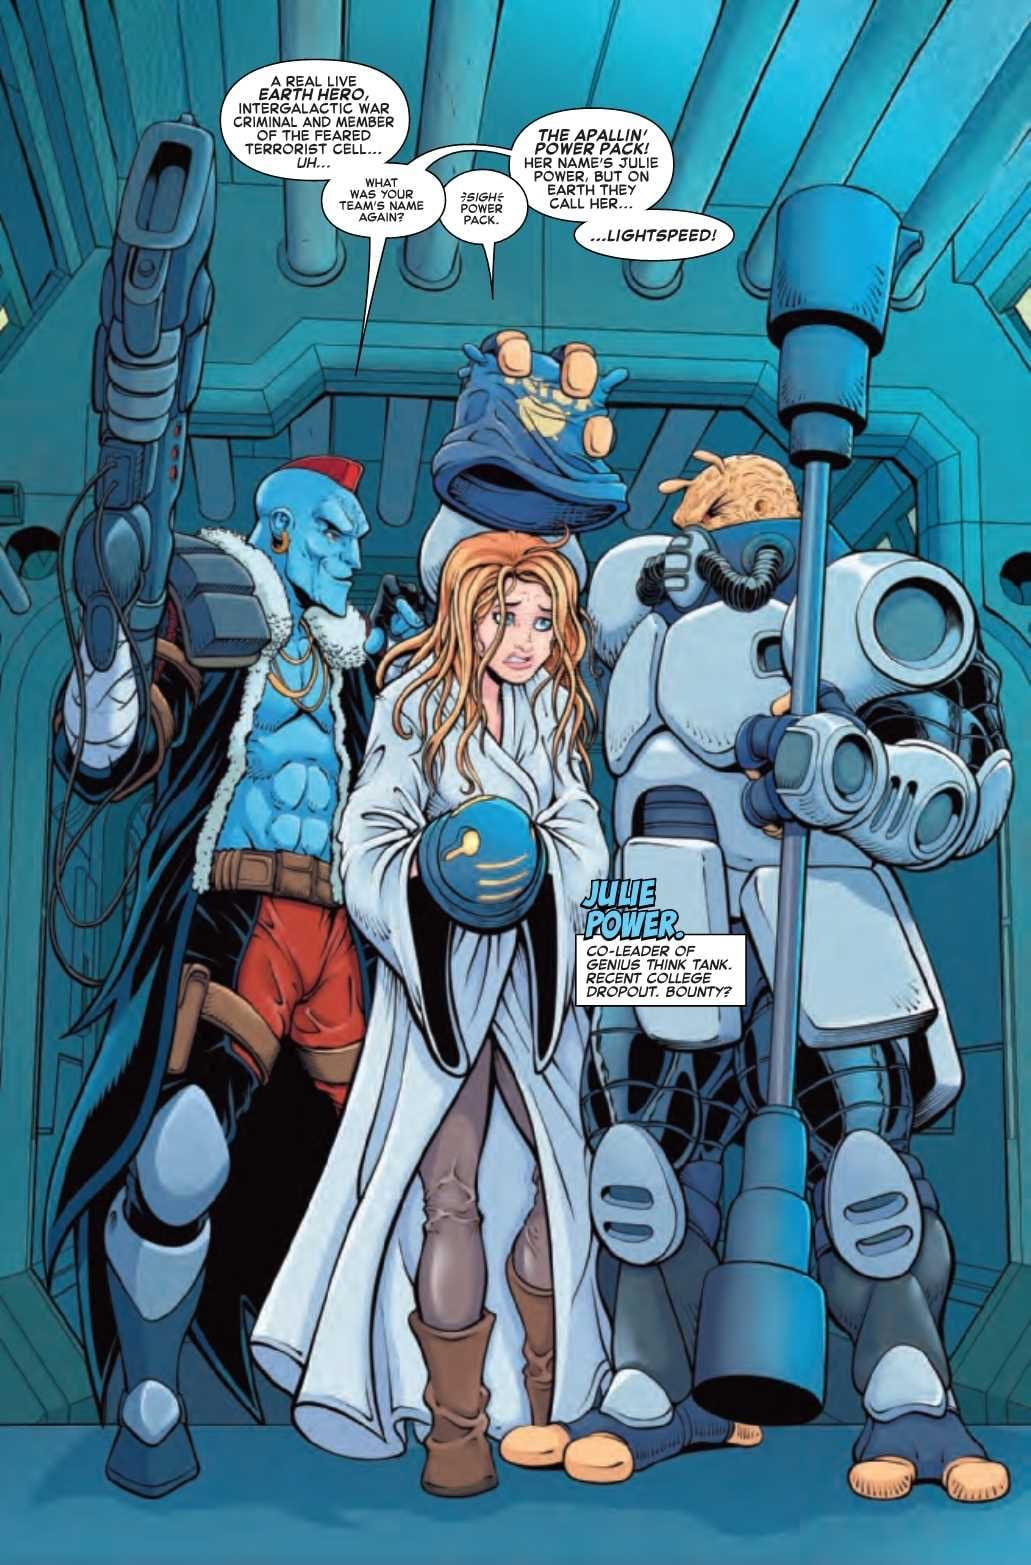 FUTURE FOUNDATION #1 - Powers Siblings Join The Team 2